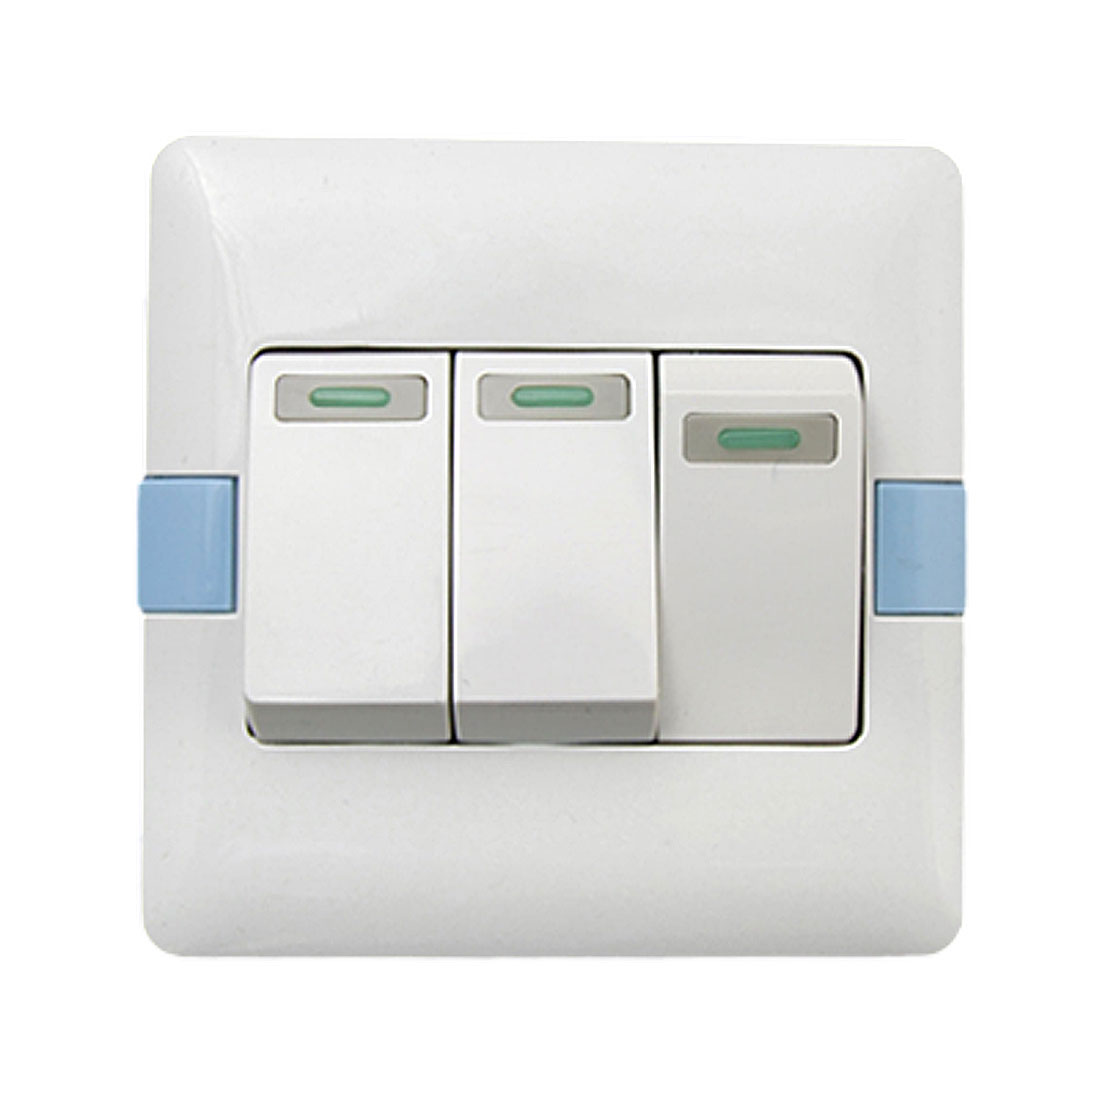 Home 16a 250v White Blue 3 Gang Button Light Switch Wall Plate Box